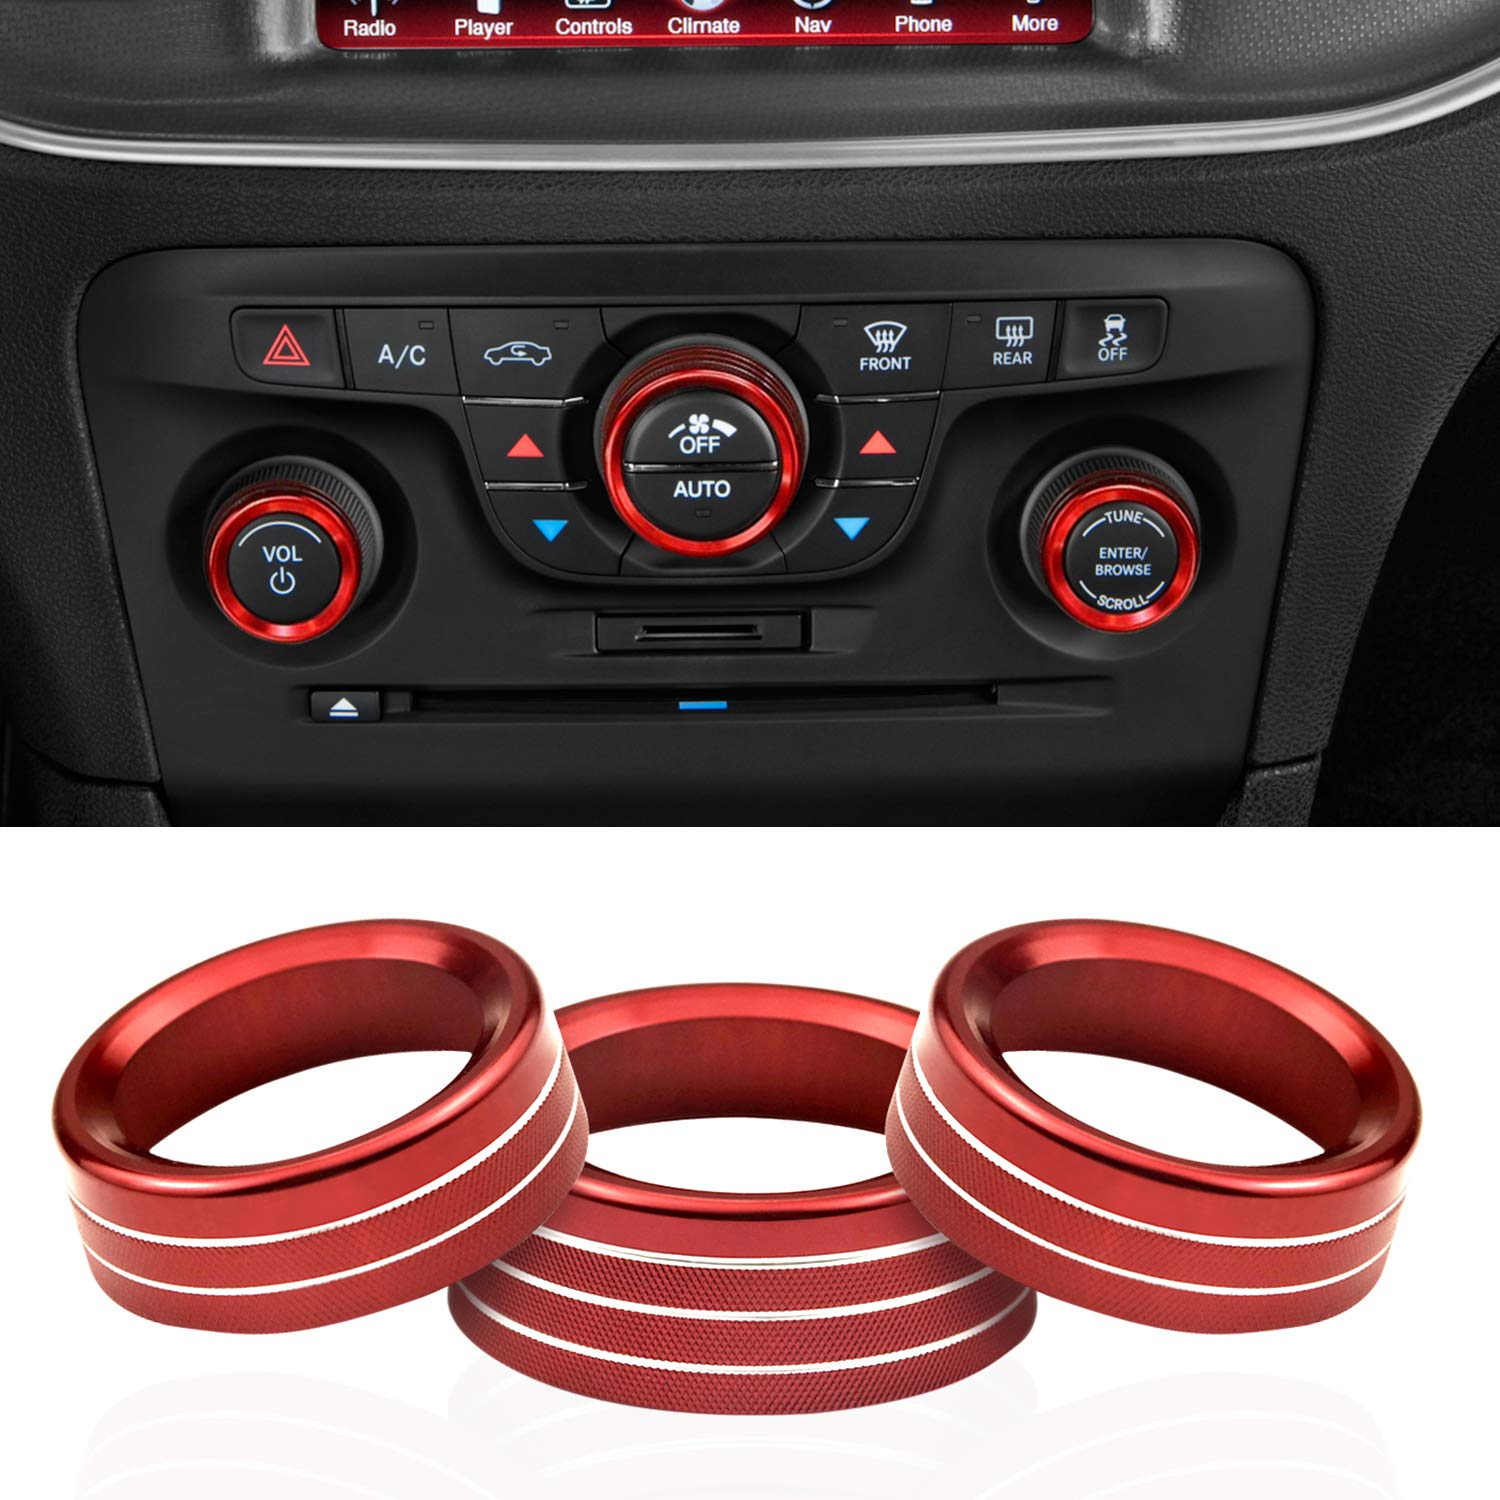 Air Conditioning Radio Volume Button Knob Cover for Dodge Challenger Charger 2015-2019 Aluminum Alloy Trim Cover,Red